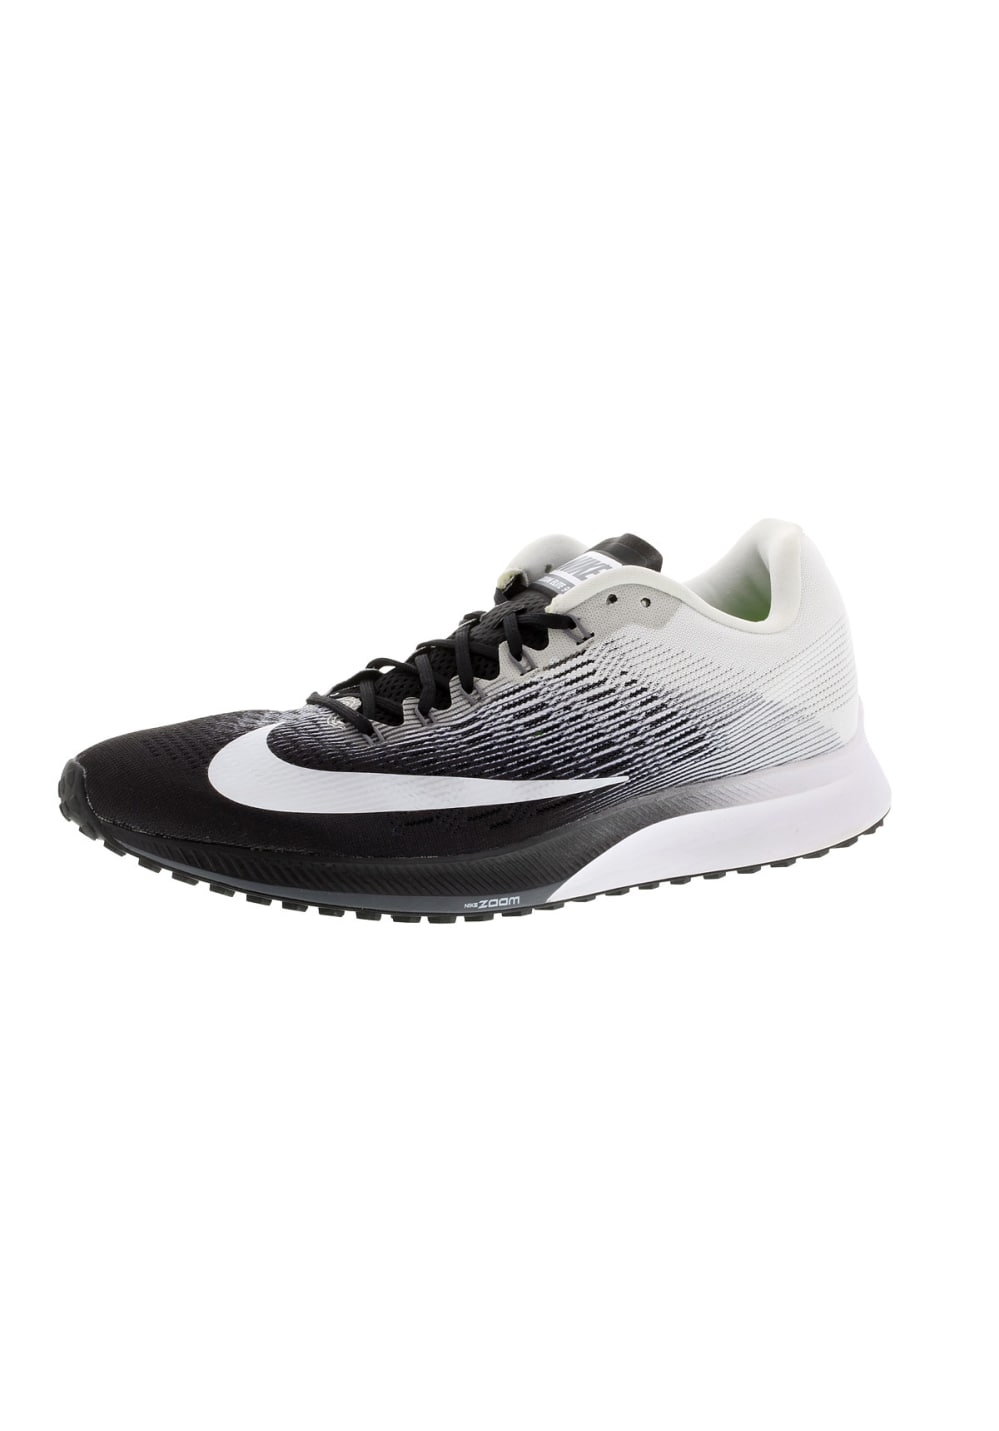 check out 5bac1 a0b20 Next. Nike. Air Zoom Elite 9 - Running shoes for Men